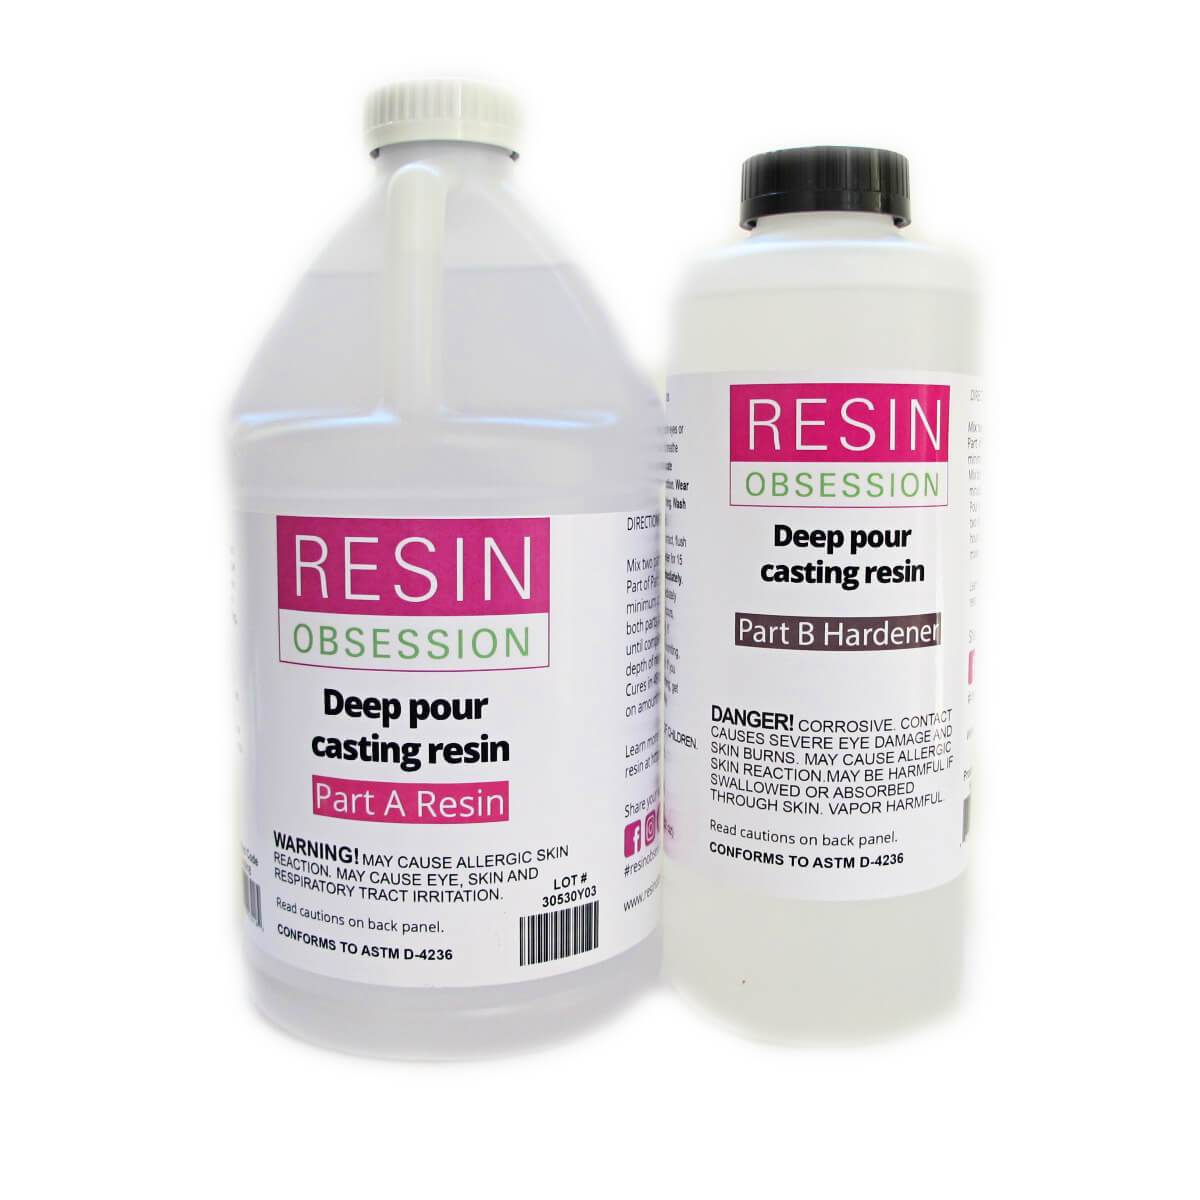 https://www.resinobsession.com/products/resin-obsession-deep-pour-epoxy-resin-river-table-resin-three-quarter-gallon-kit/